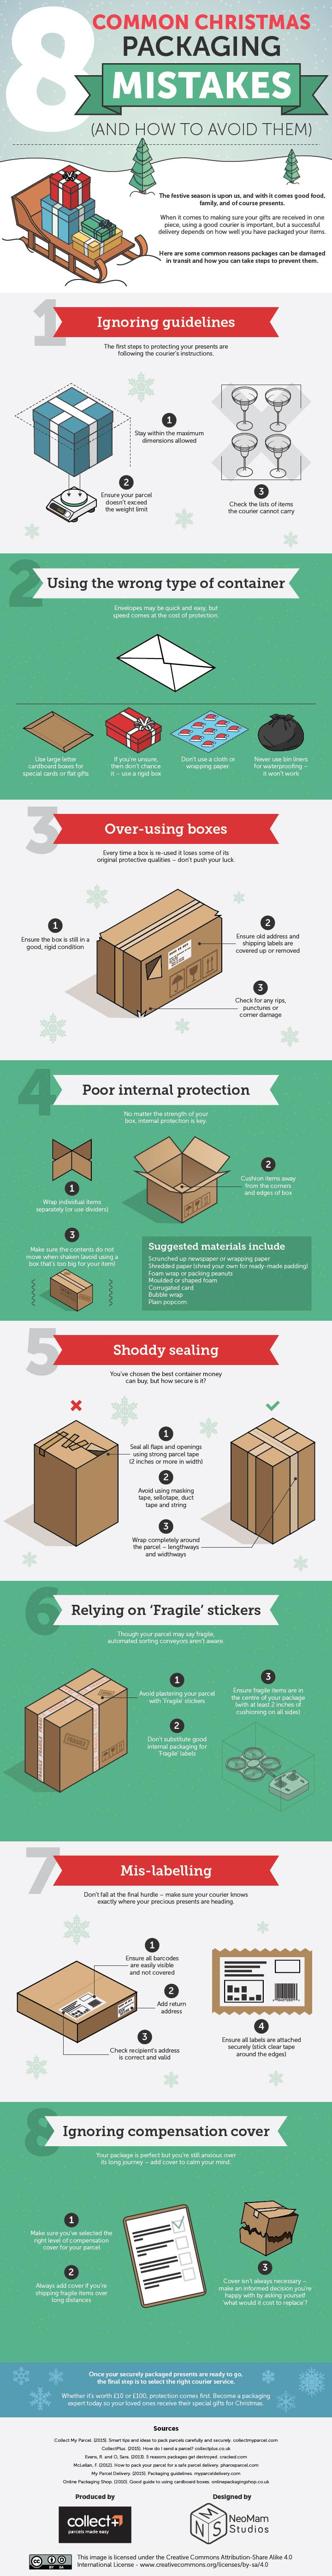 8 Common Christmas Packaging Mistakes